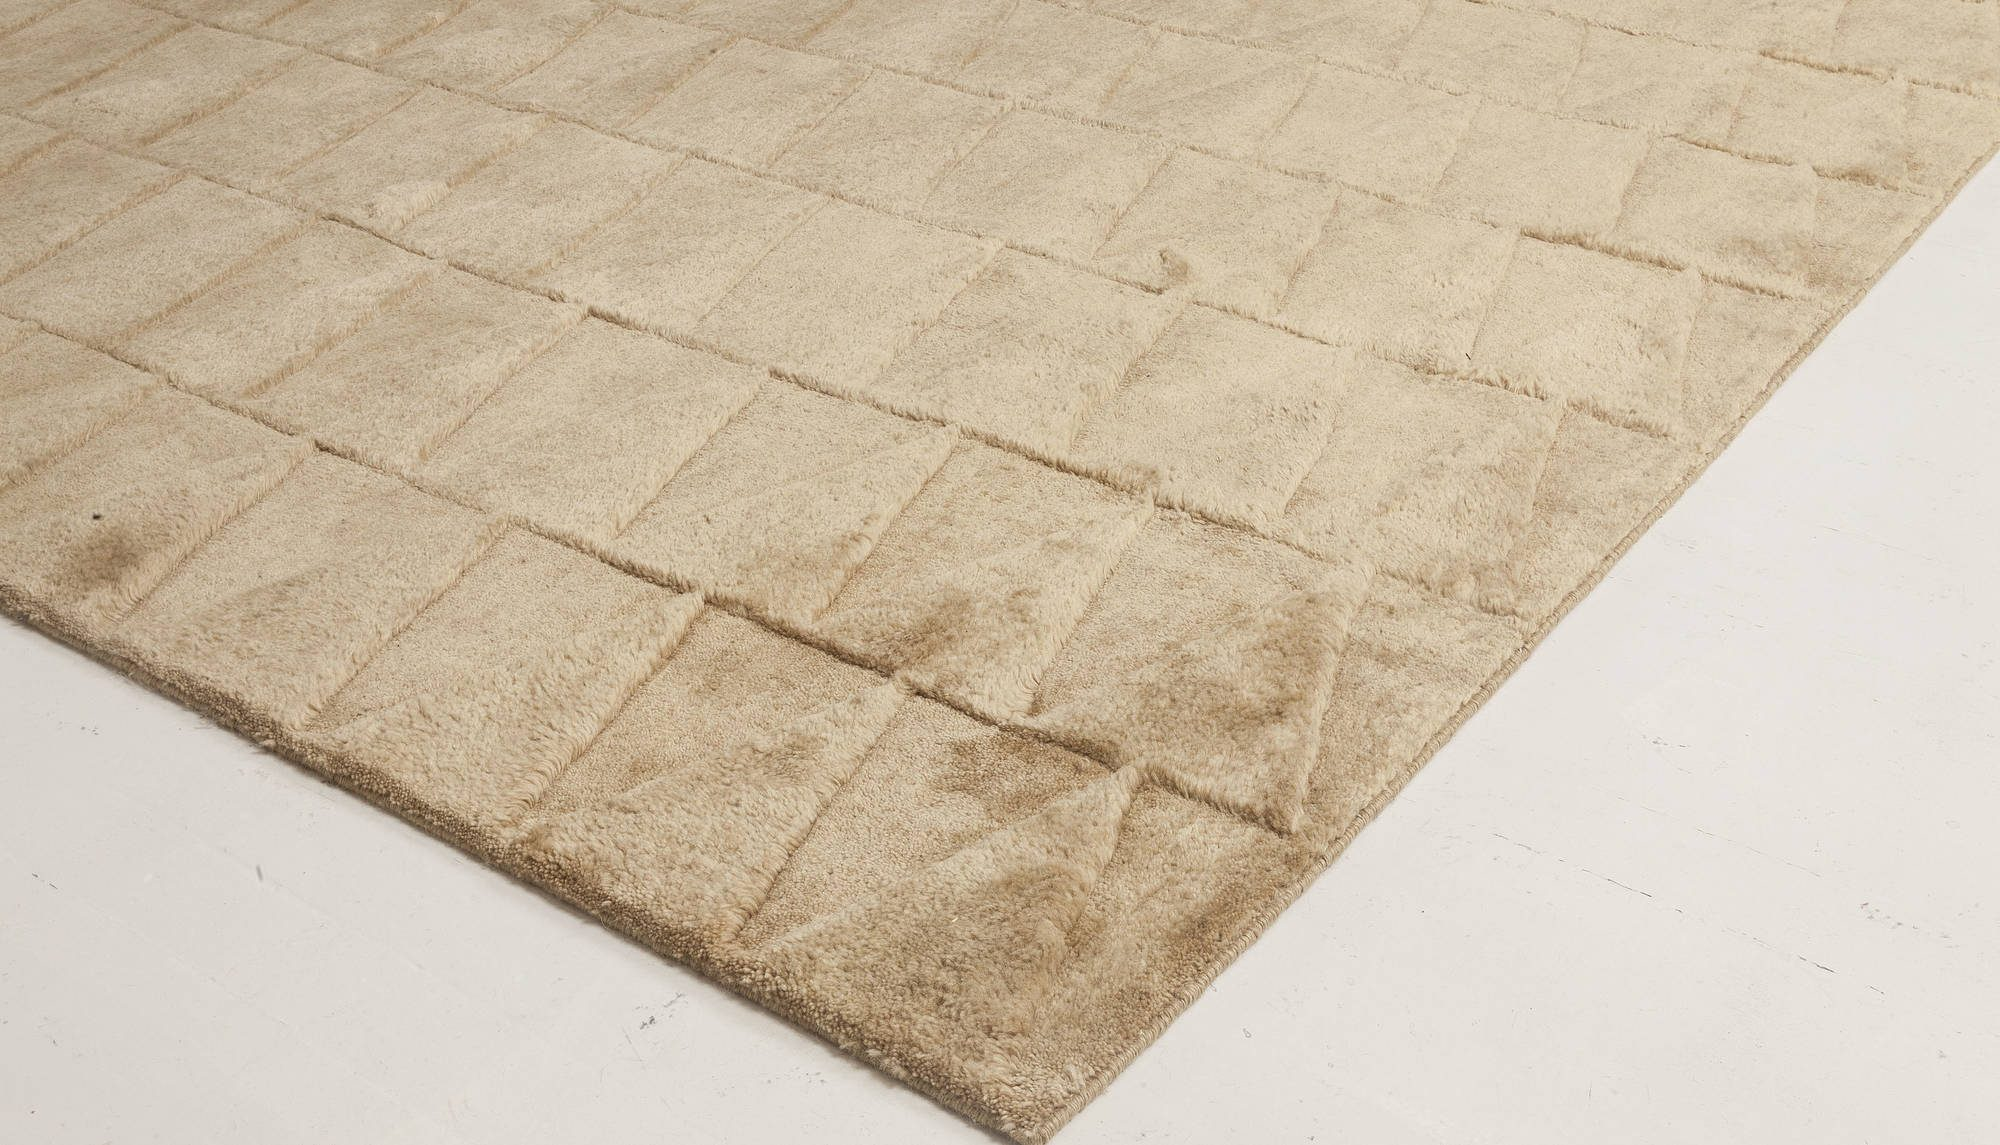 Steppe Rug in Cream and Ivory N11742